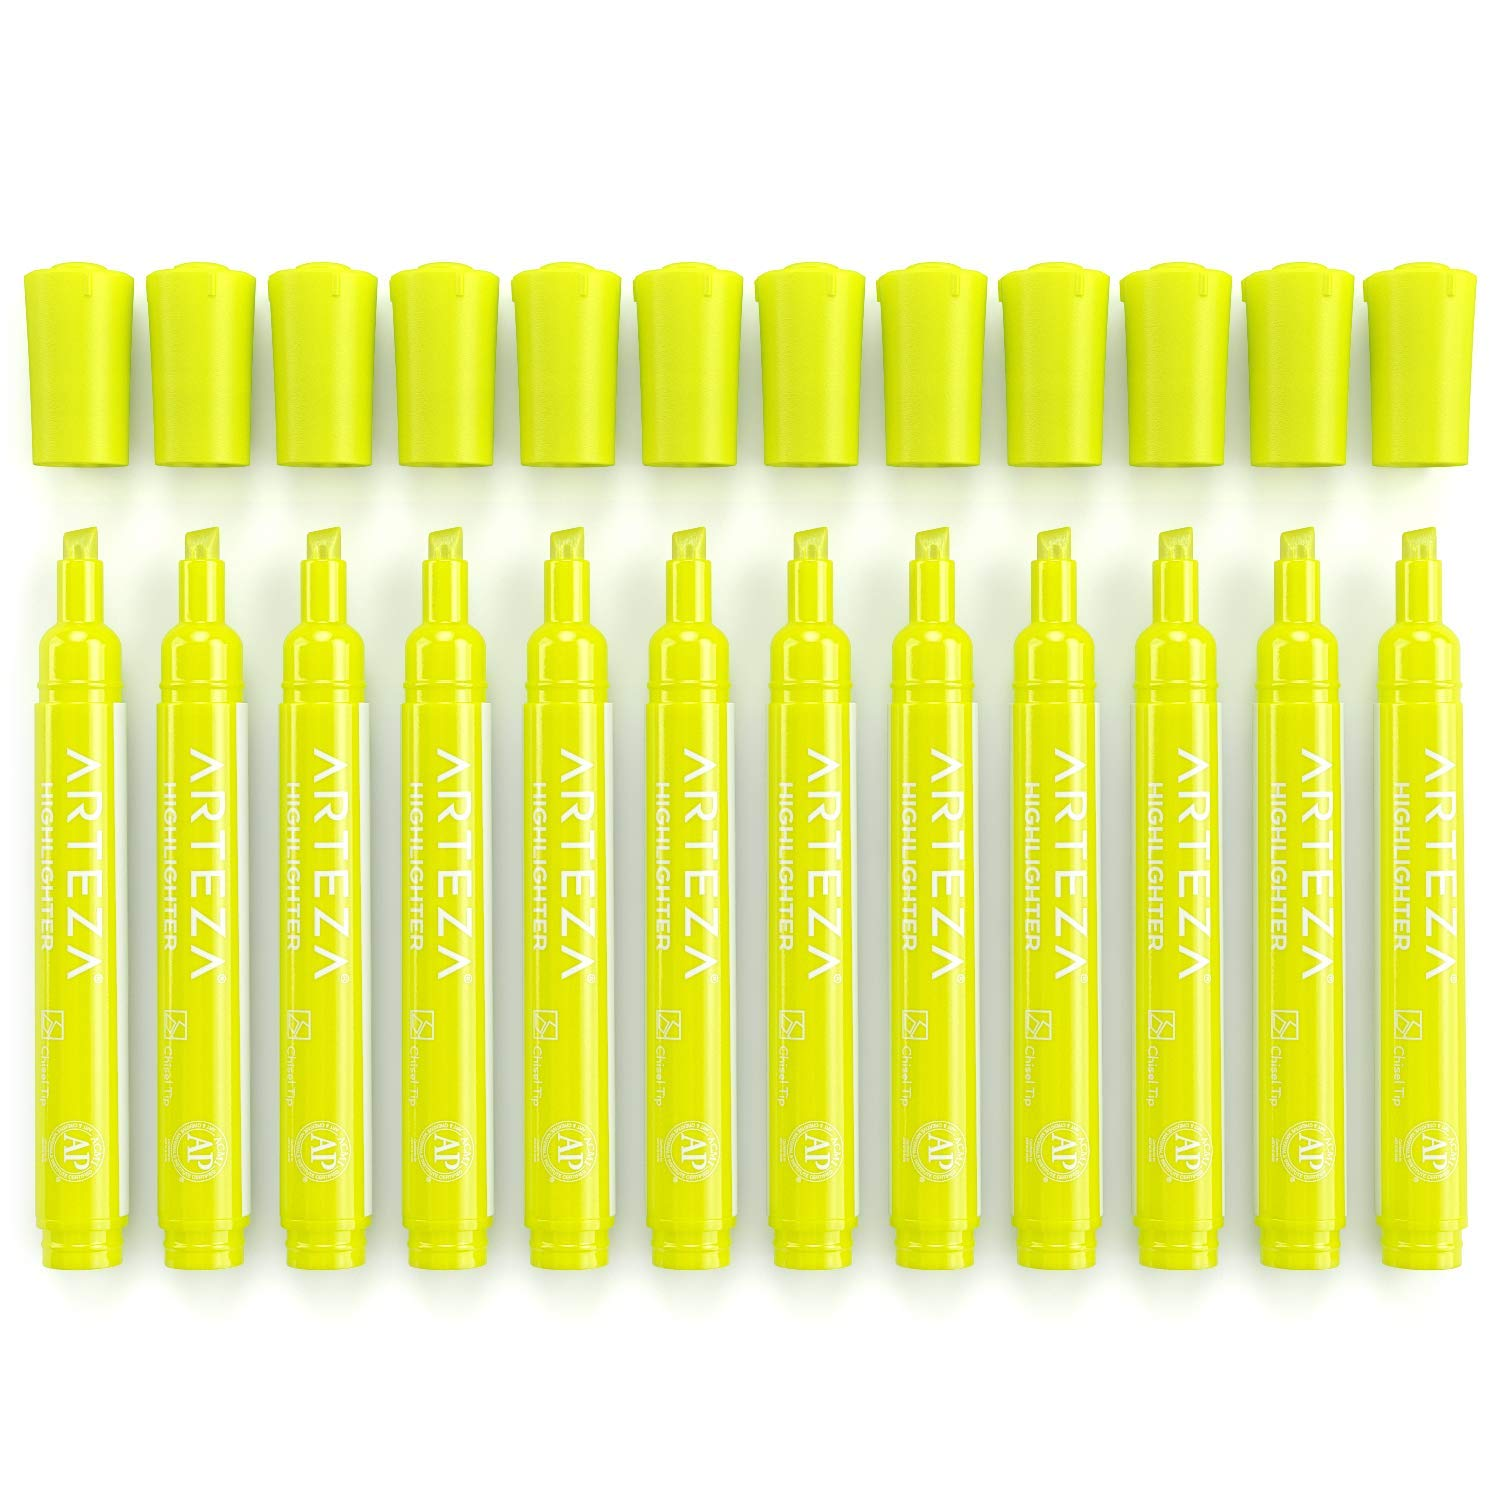 Arteza Highlighters Set of 64, Yellow Color, Wide Chisel Tips, Bulk Pack of Markers, for Office, School, Kids & Adults by ARTEZA (Image #5)